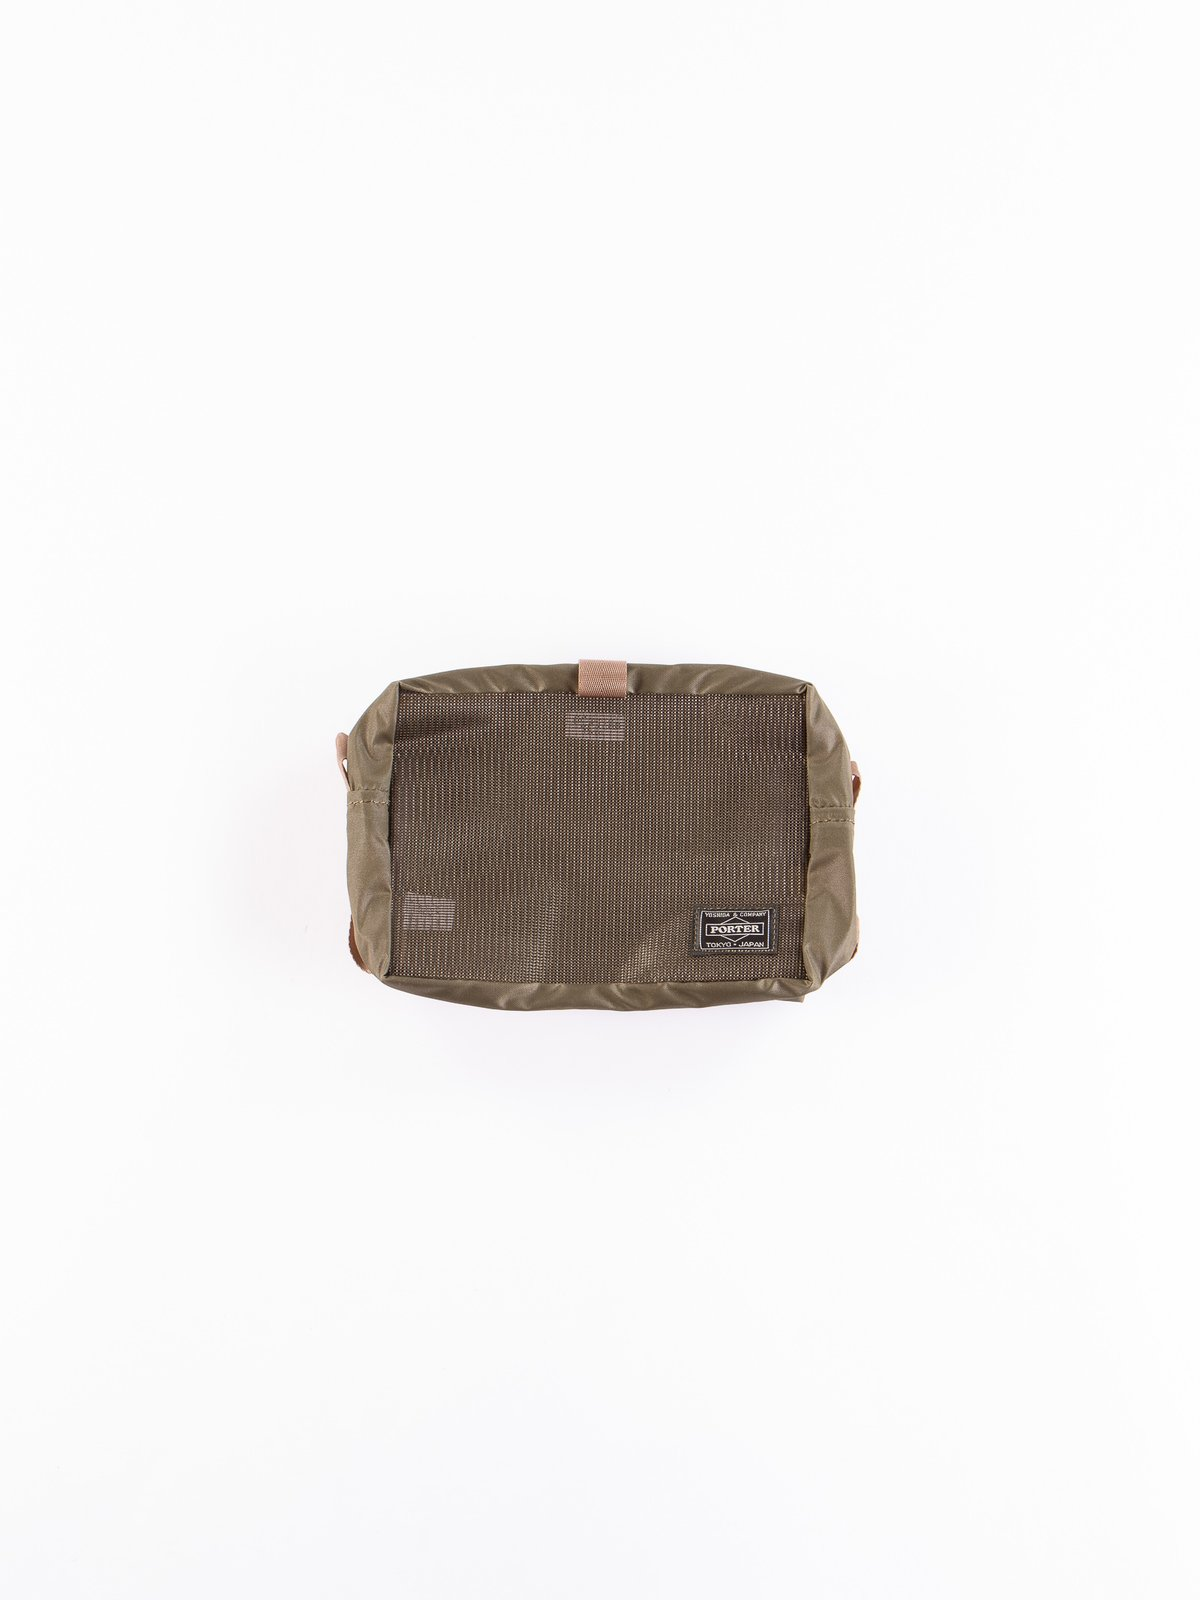 Olive Drab Snack Pack 09810 Pouch Small - Image 1